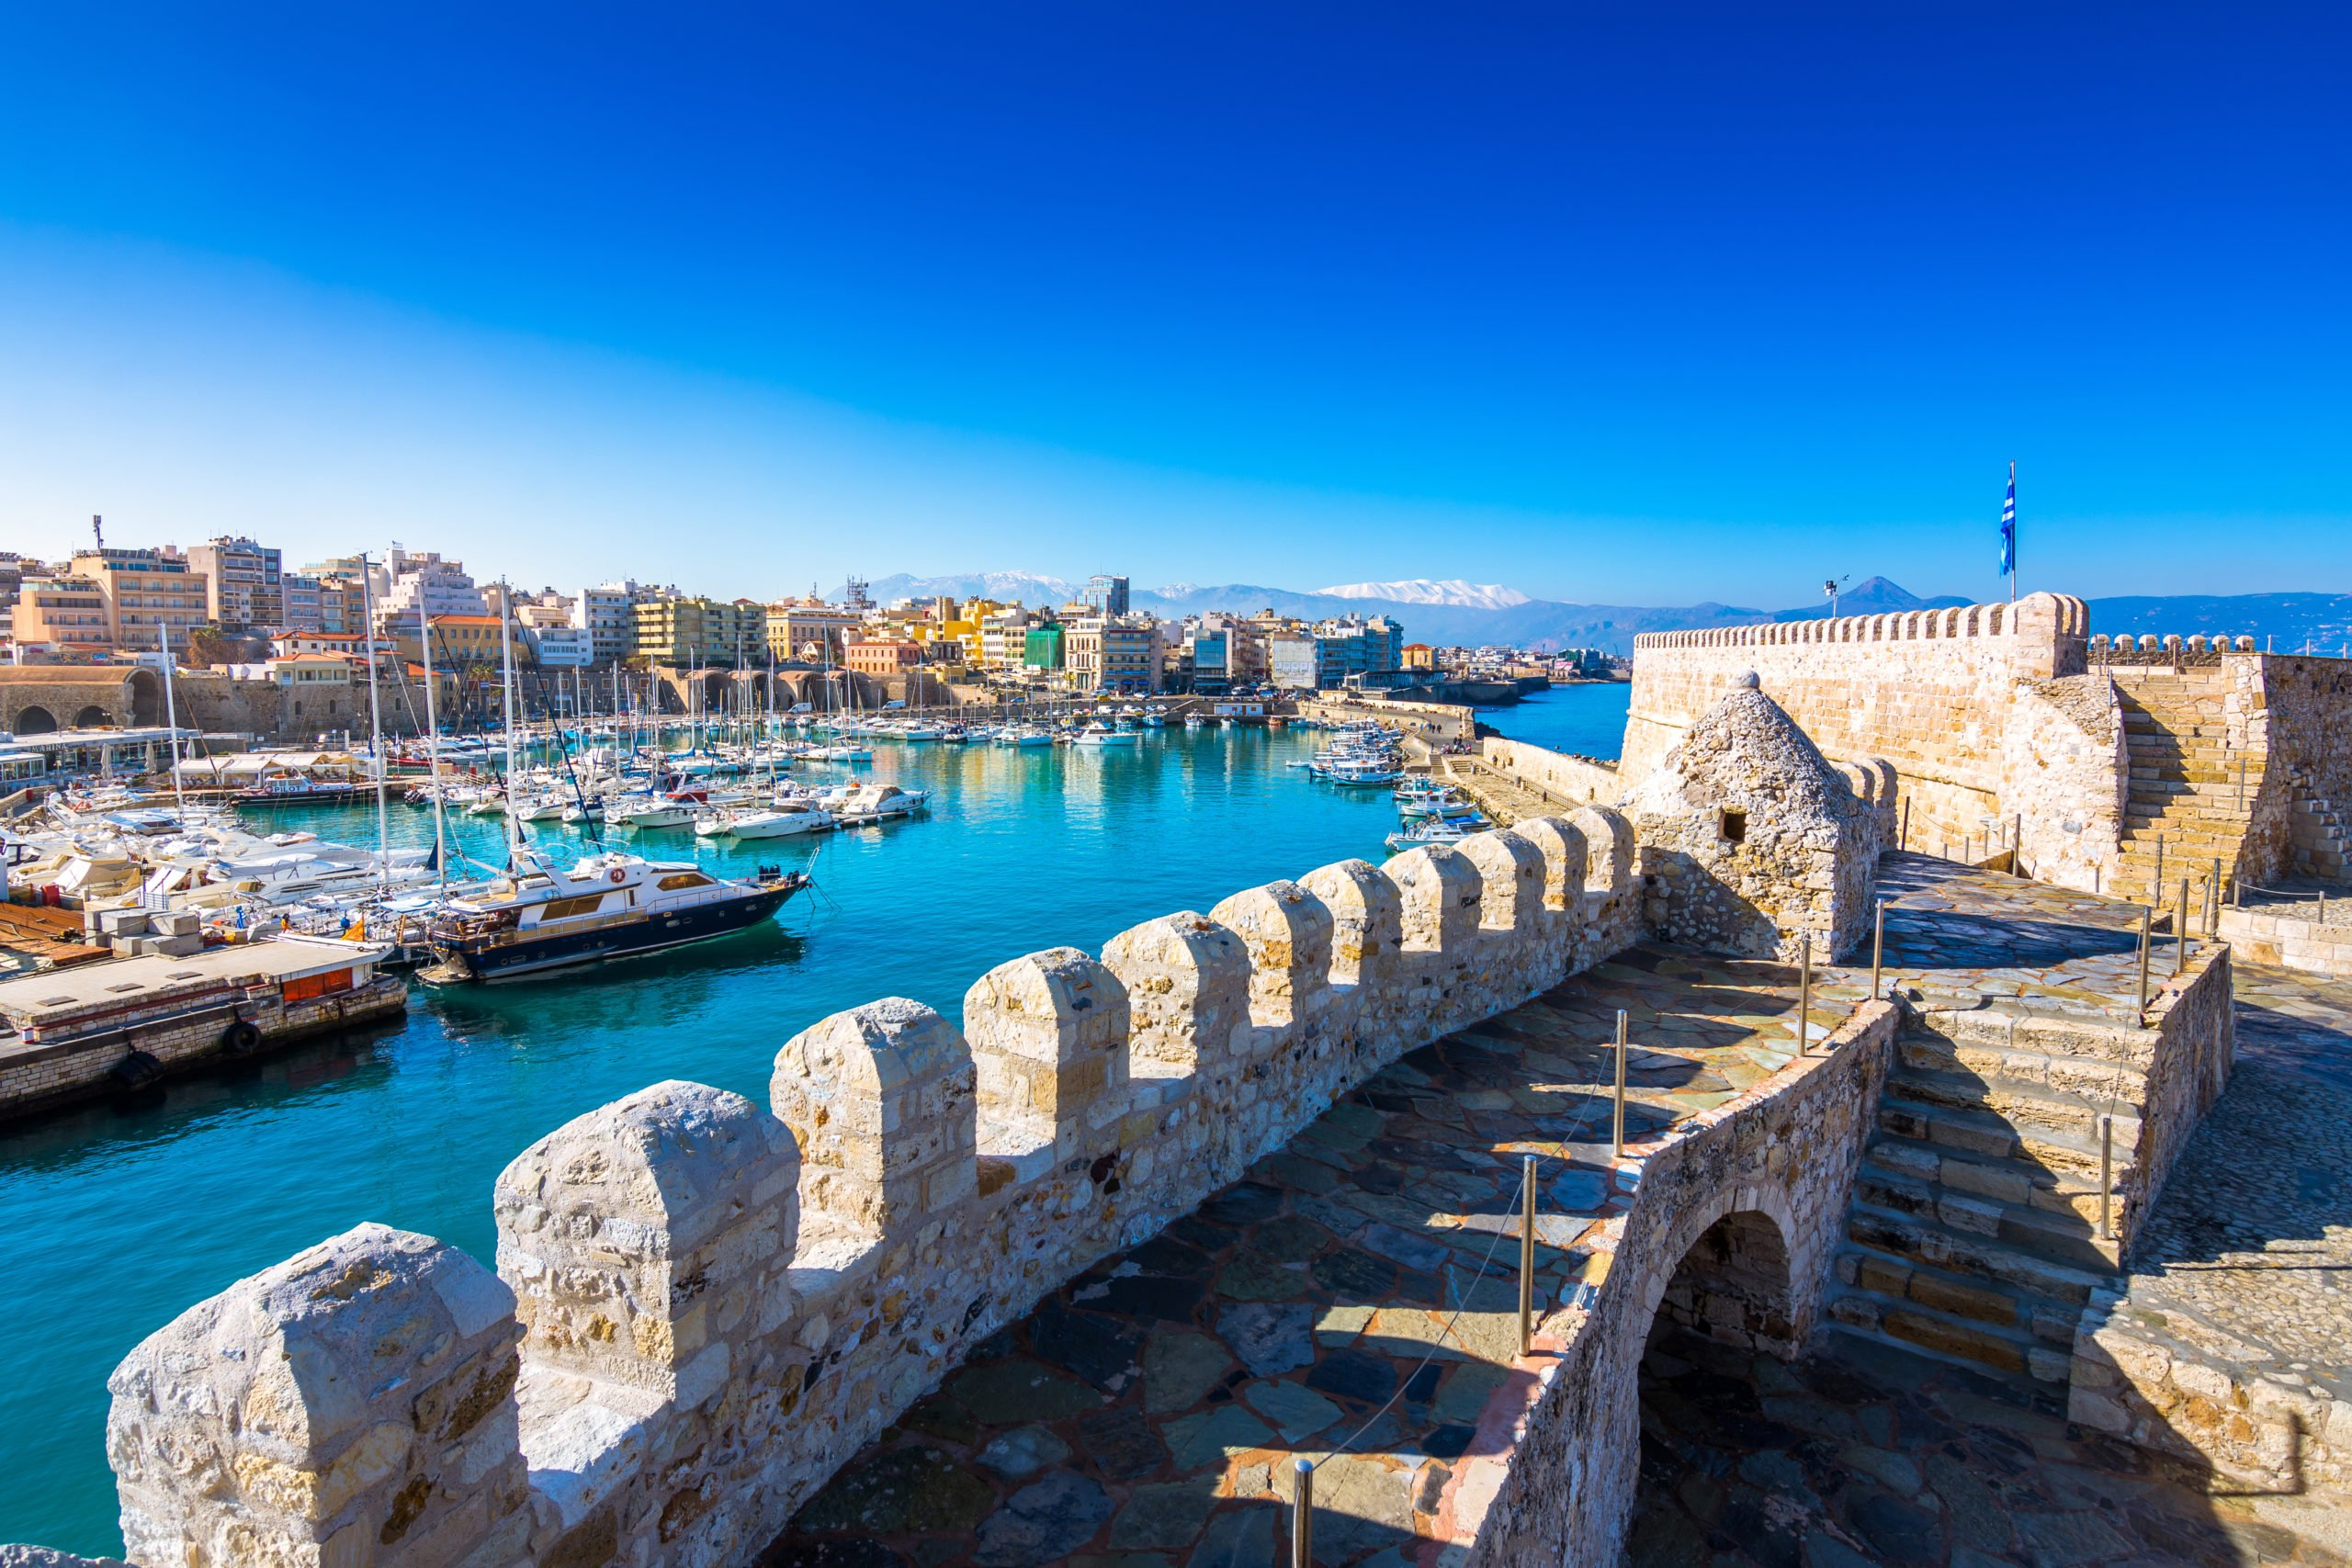 Explore Heraklion On The Knossos Palace And Heraklion Archaeological Museum Tour